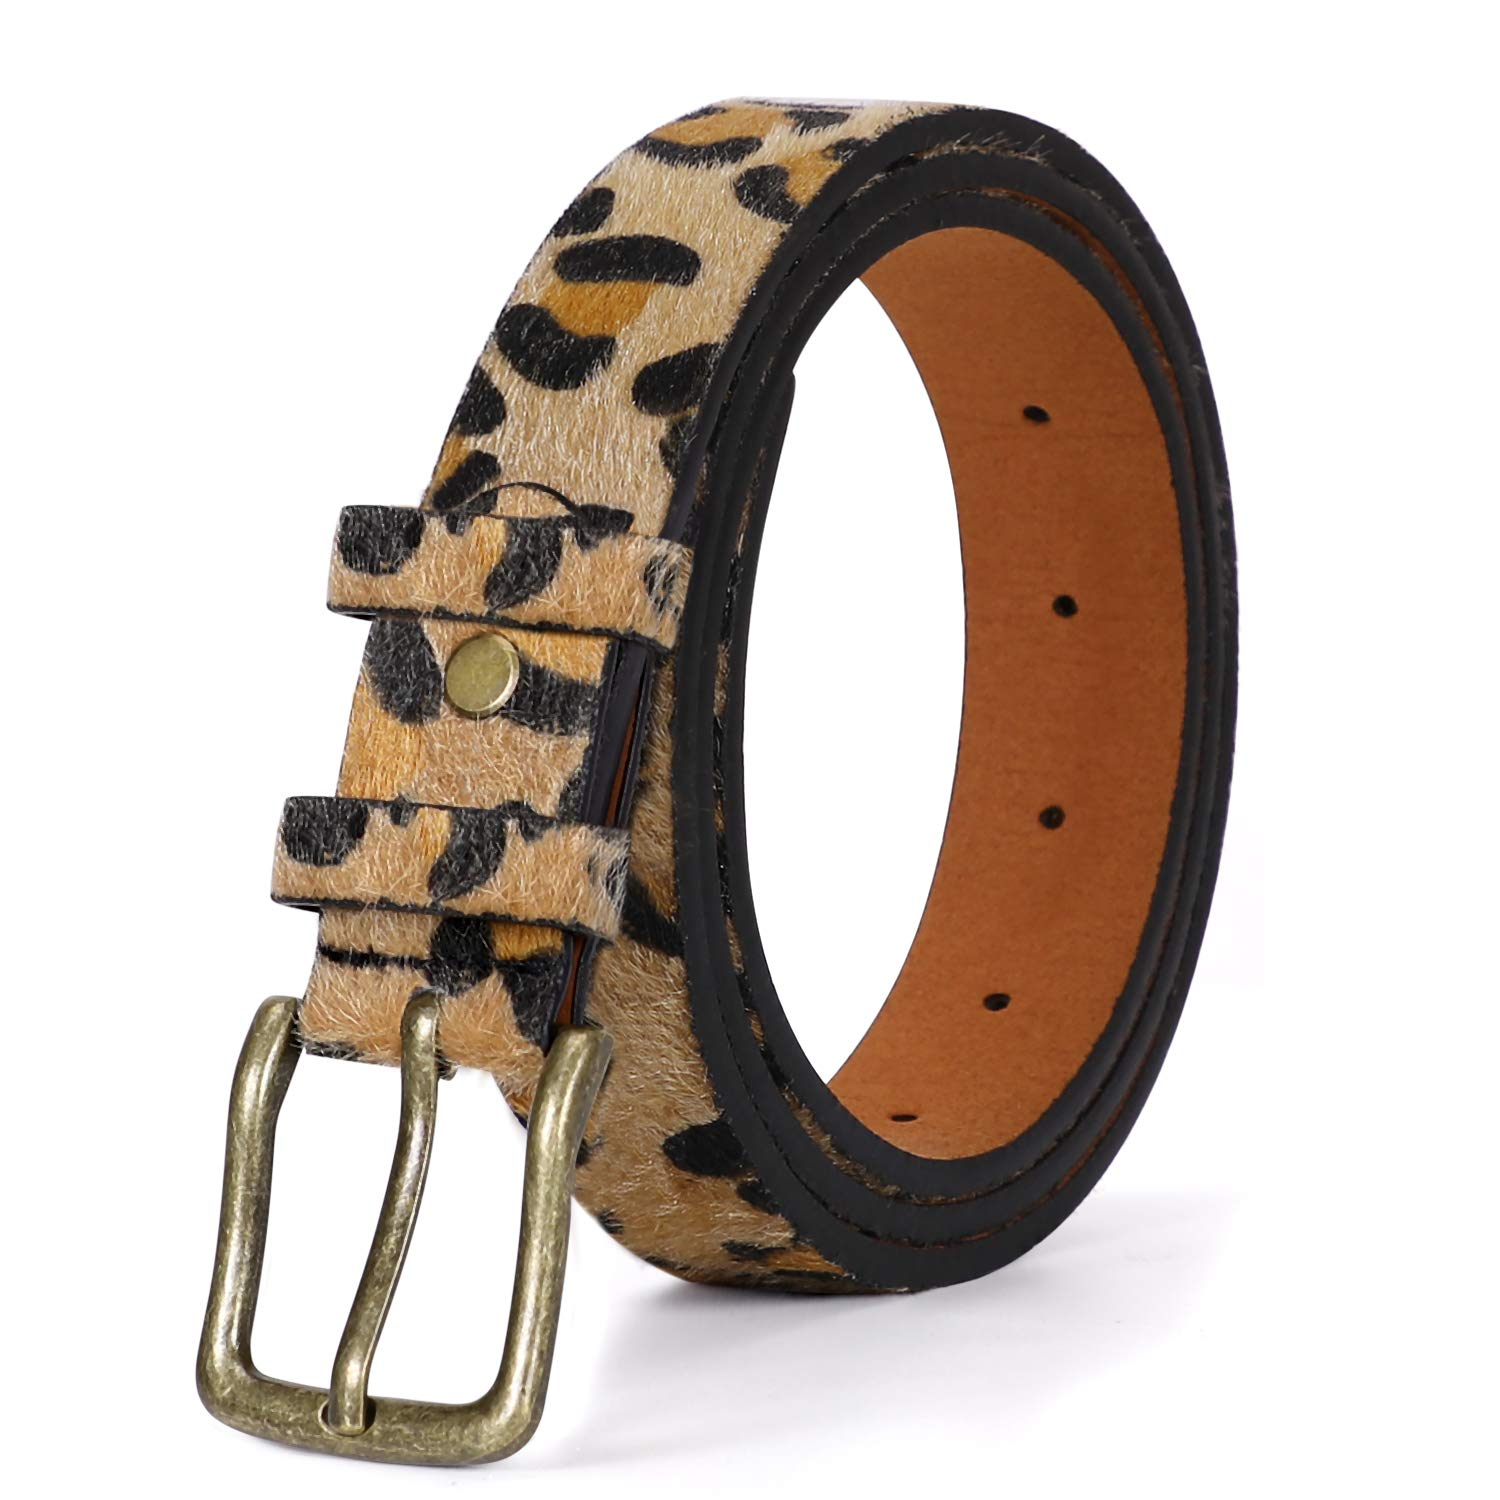 Women Leopard Print Leather Belt for Pants Jeans Waist Belt with Alloy Buckle Plus Size Belt by WHIPPY